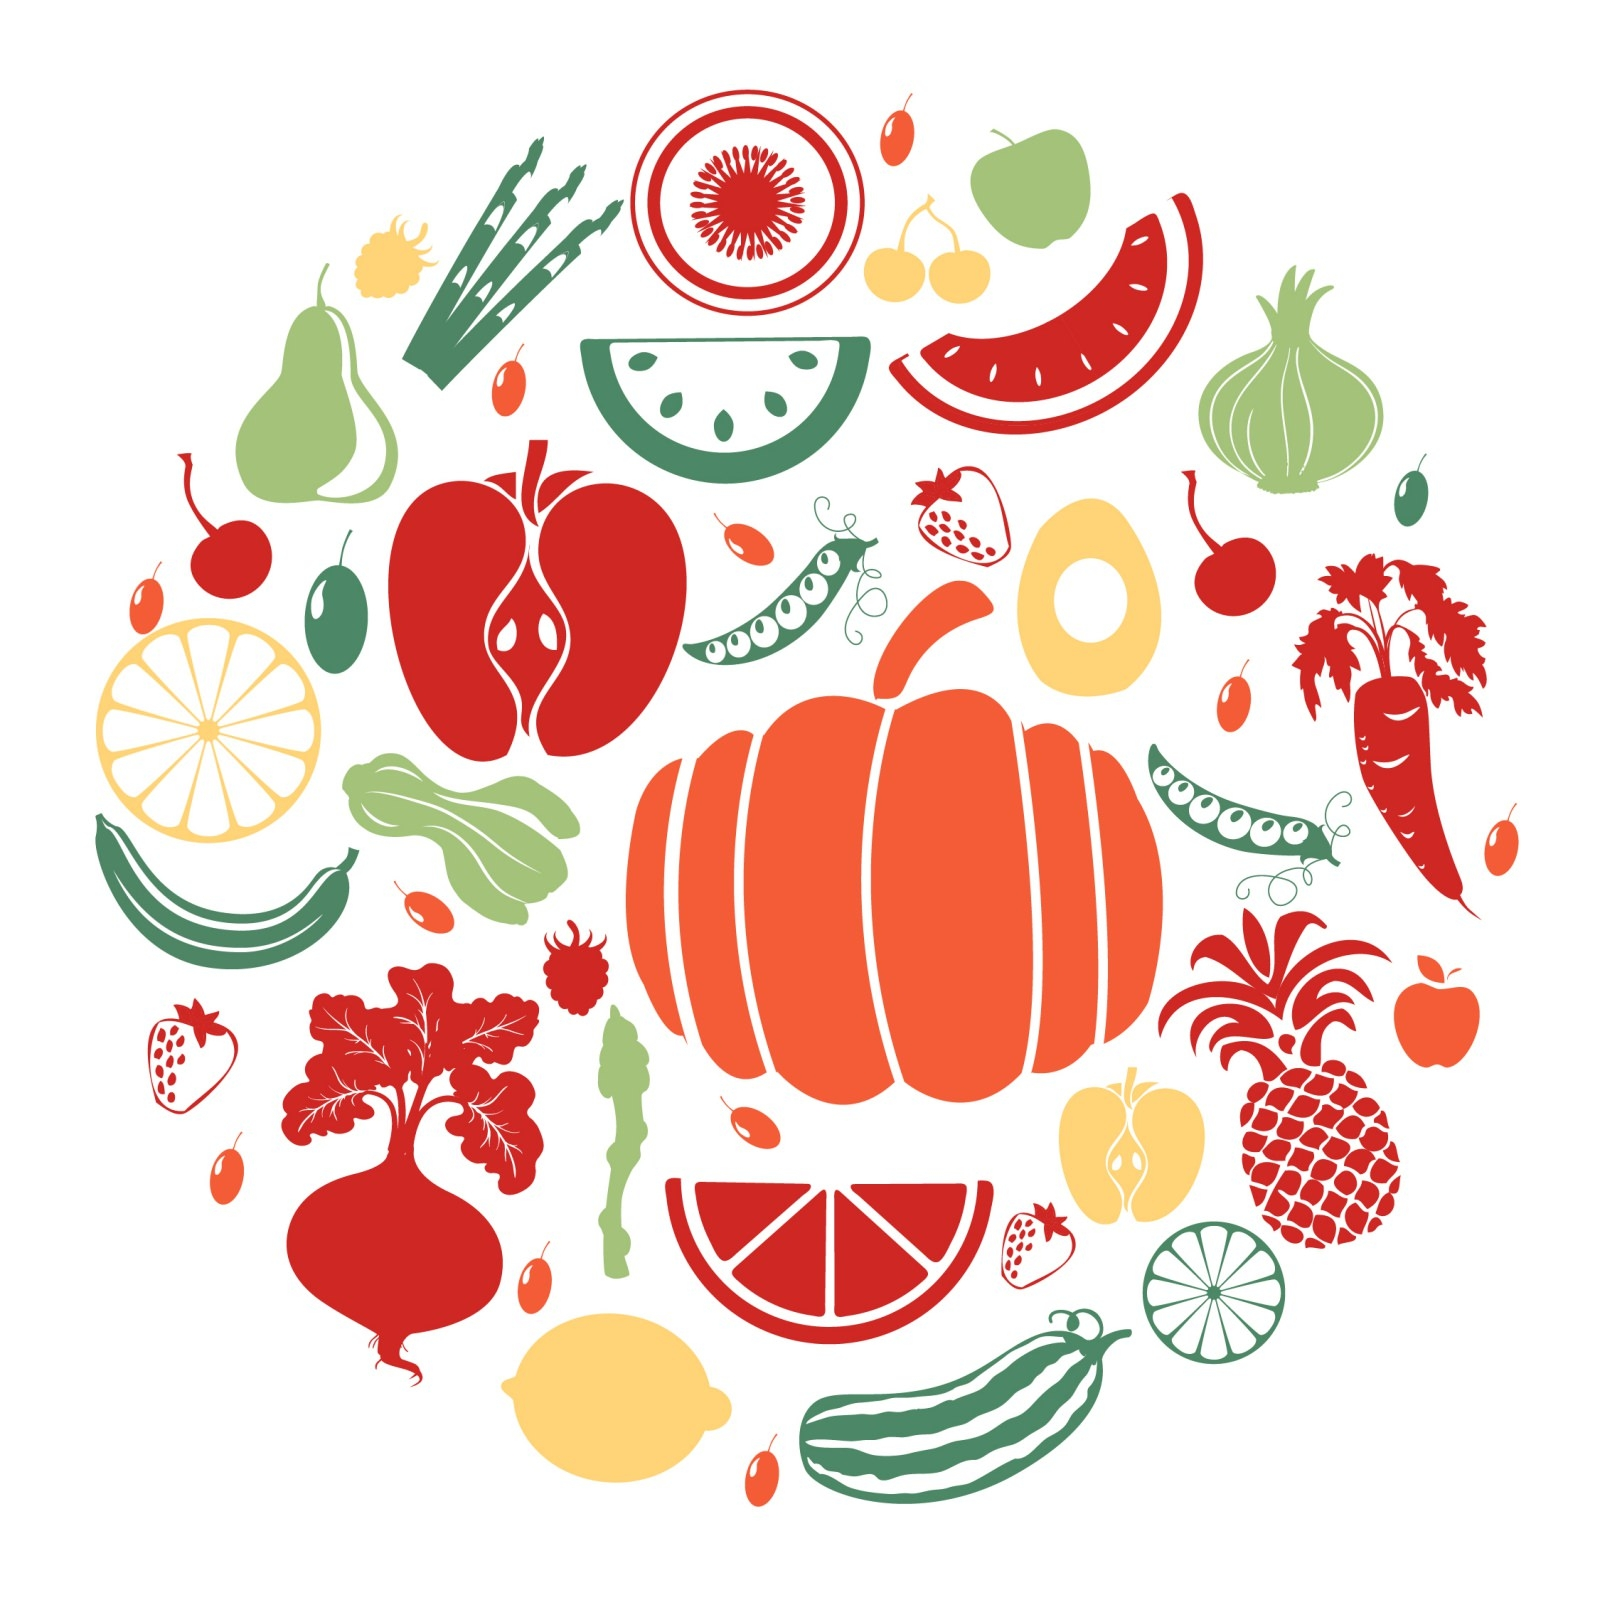 free vector vegetables clipart - photo #29